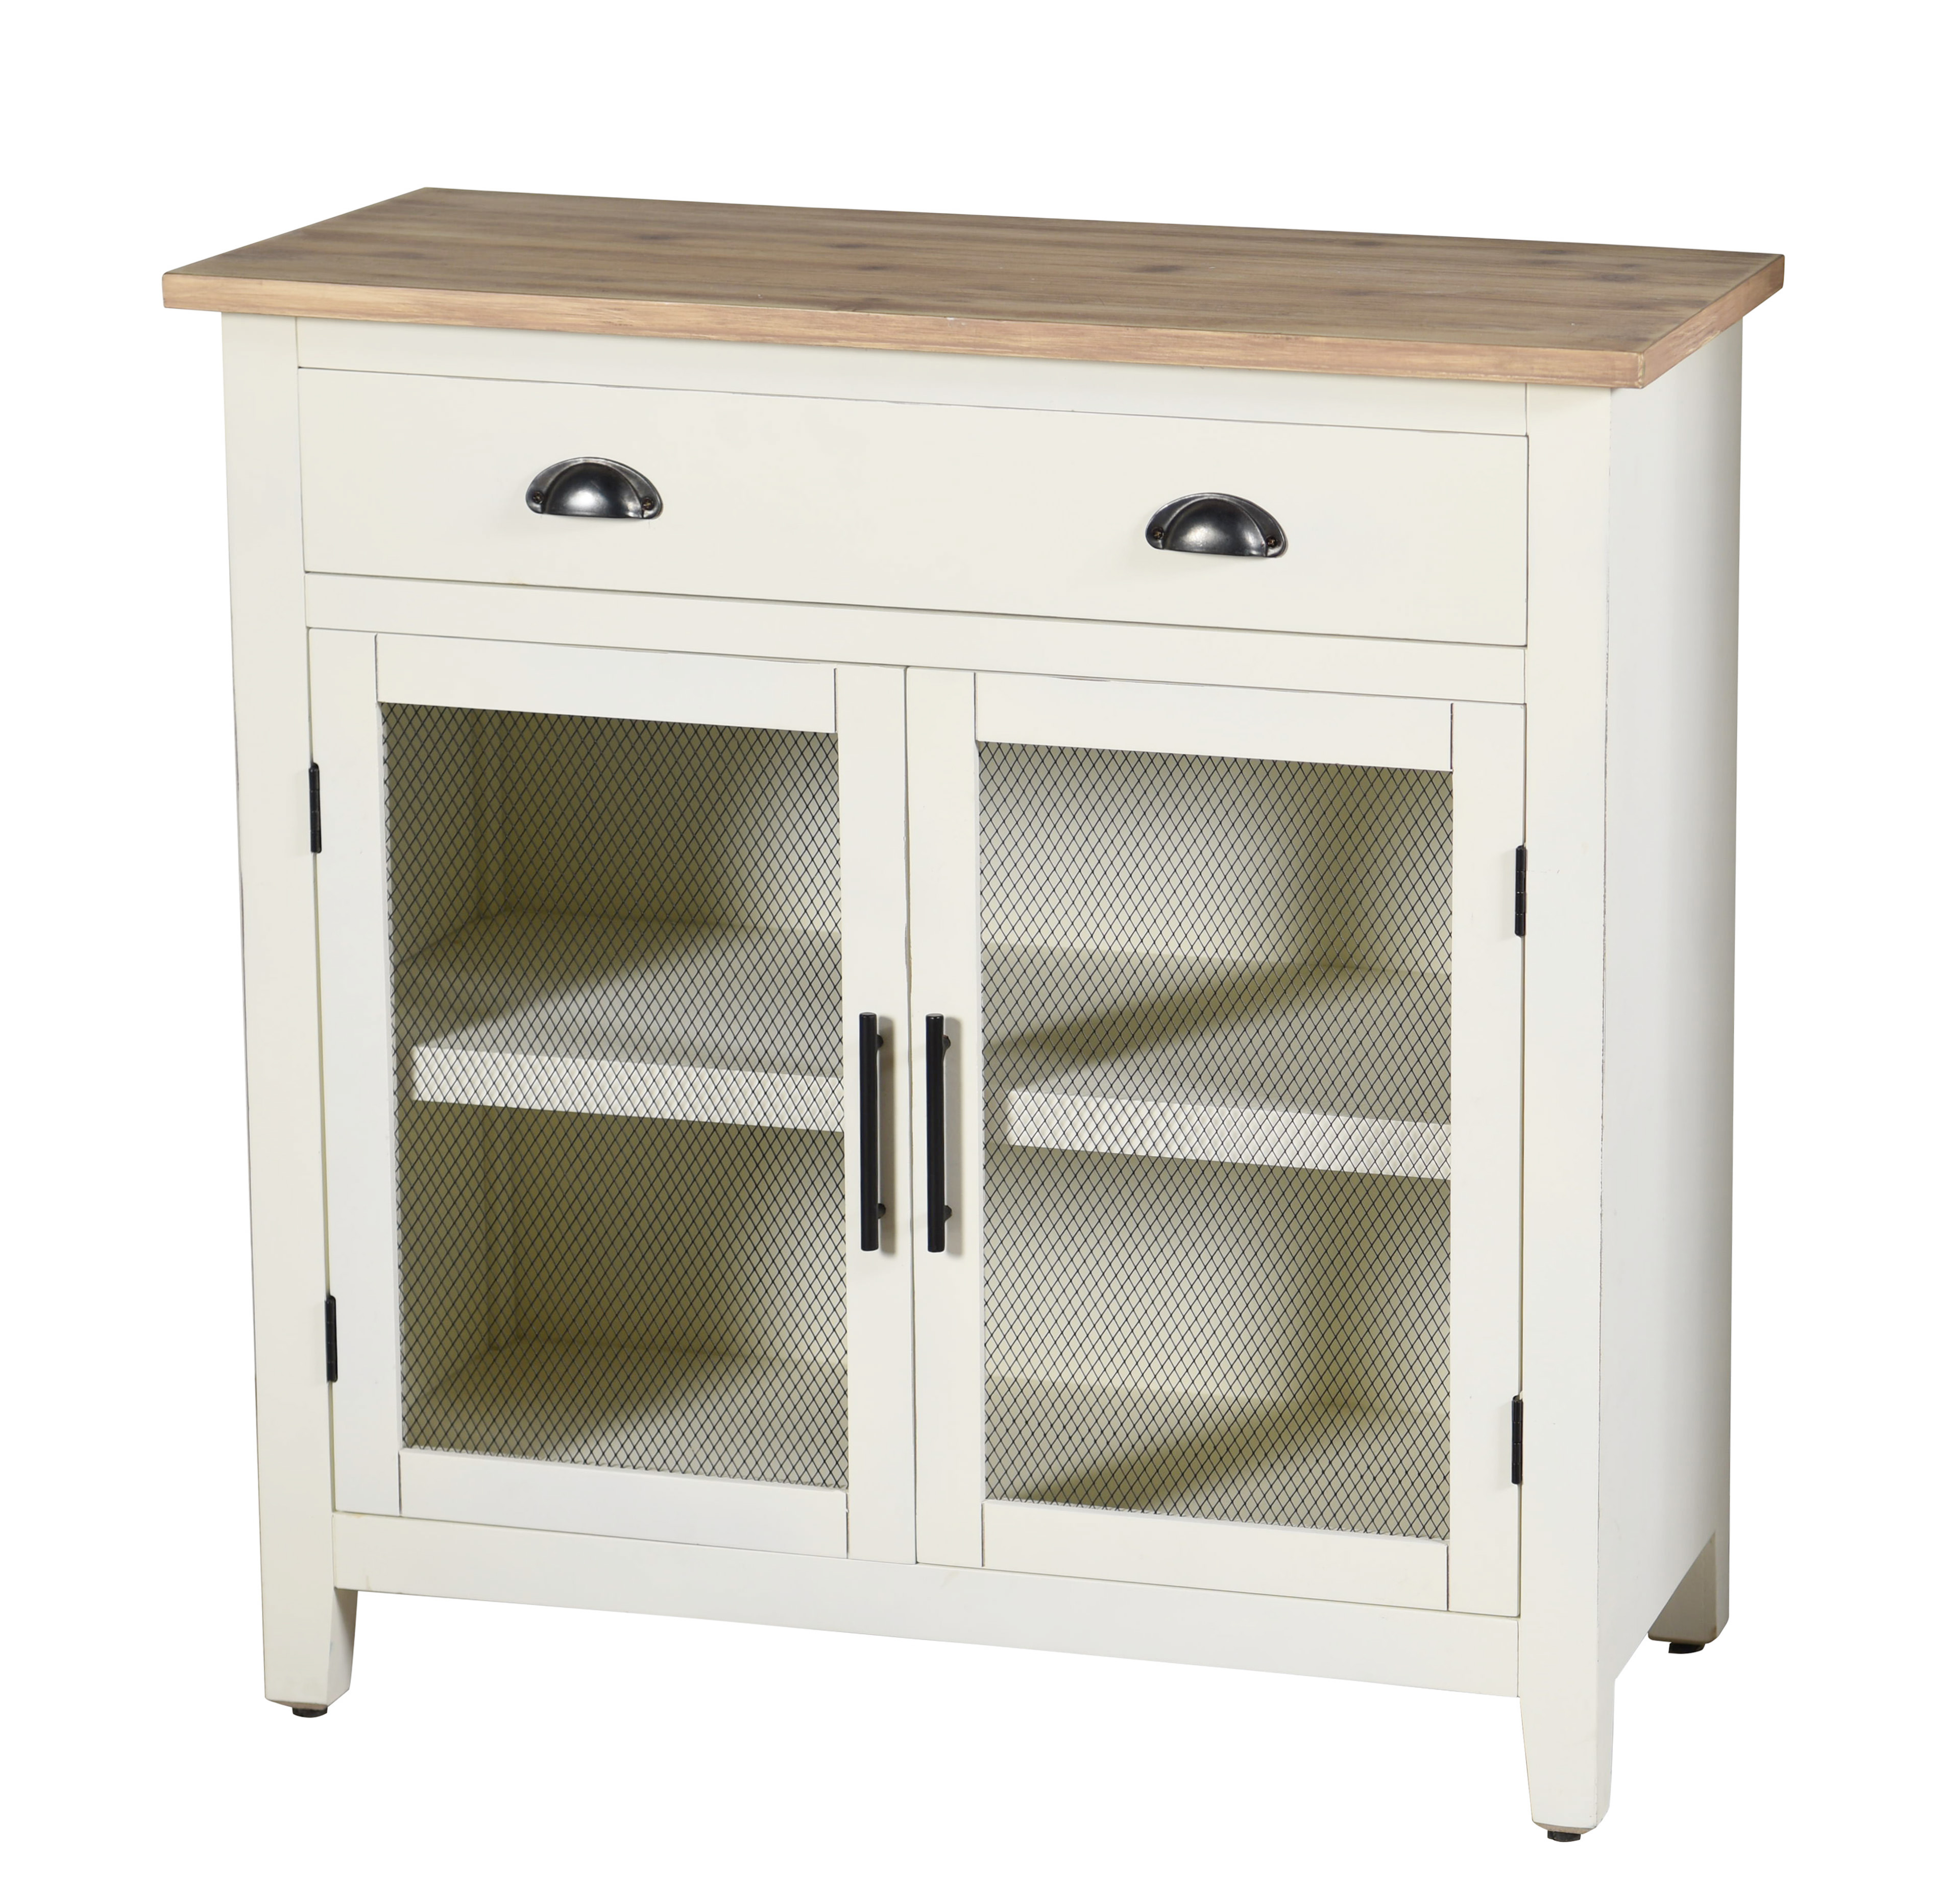 Quail Farm Two Door, Drawer and Shelf Cabinet - White and Natural